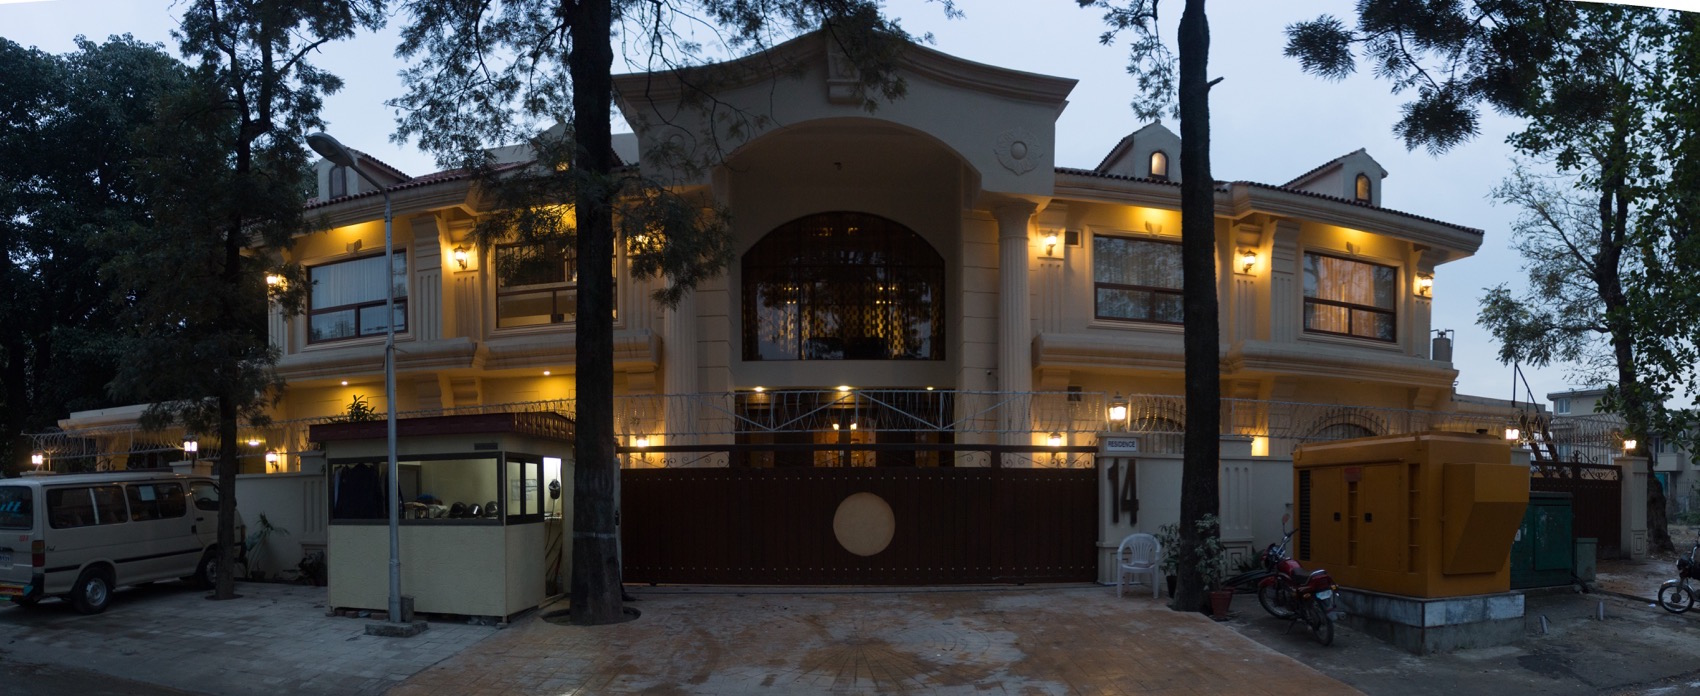 Chalet Guest House F-6/3 Islamabad_image